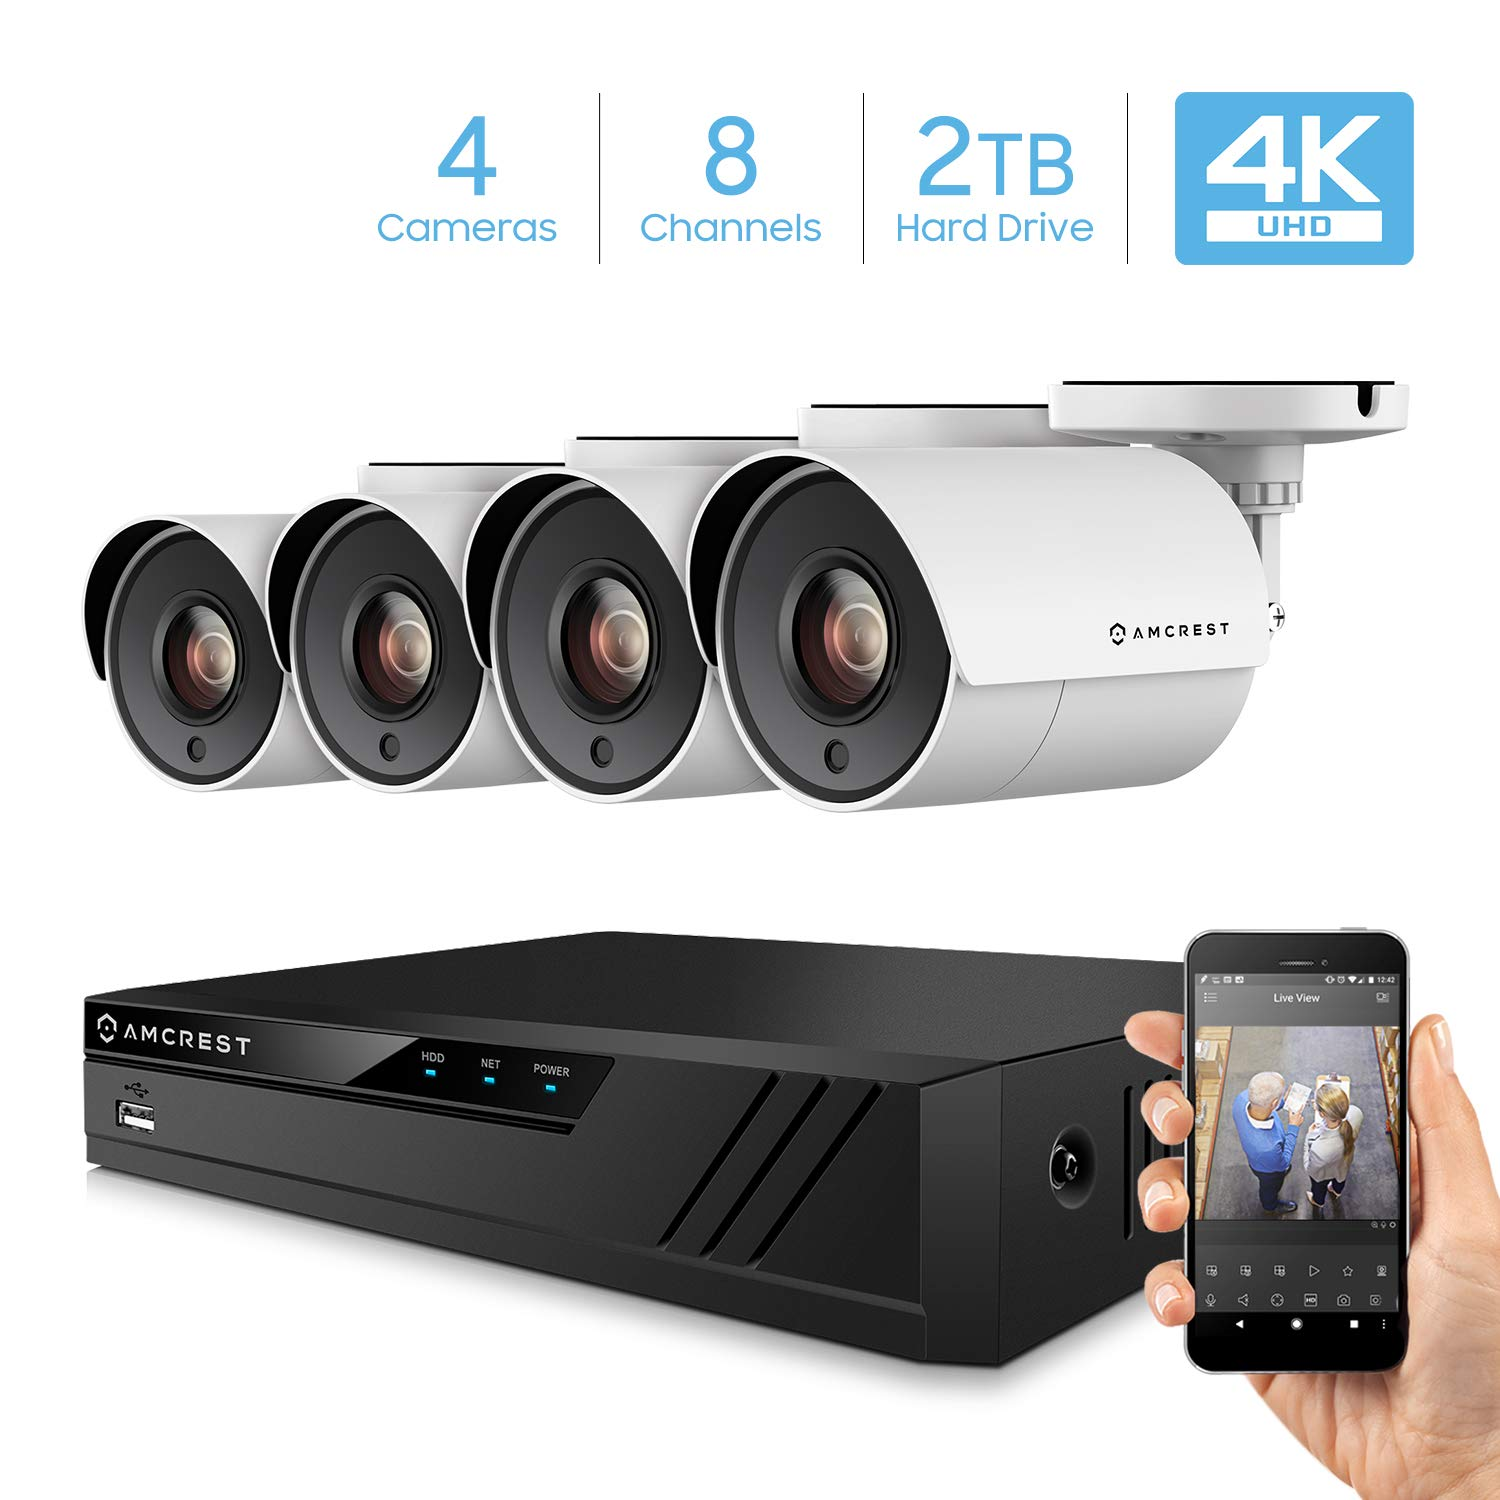 Amcrest 4K Security Camera System 8CH 8MP Video DVR with 4X 4K 8-Megapixel Indoor Outdoor Weatherproof IP67 Cameras, 2TB Hard Drive, 100ft Night Vision, for Home Business (AMDV80M8-4B-W) by Amcrest